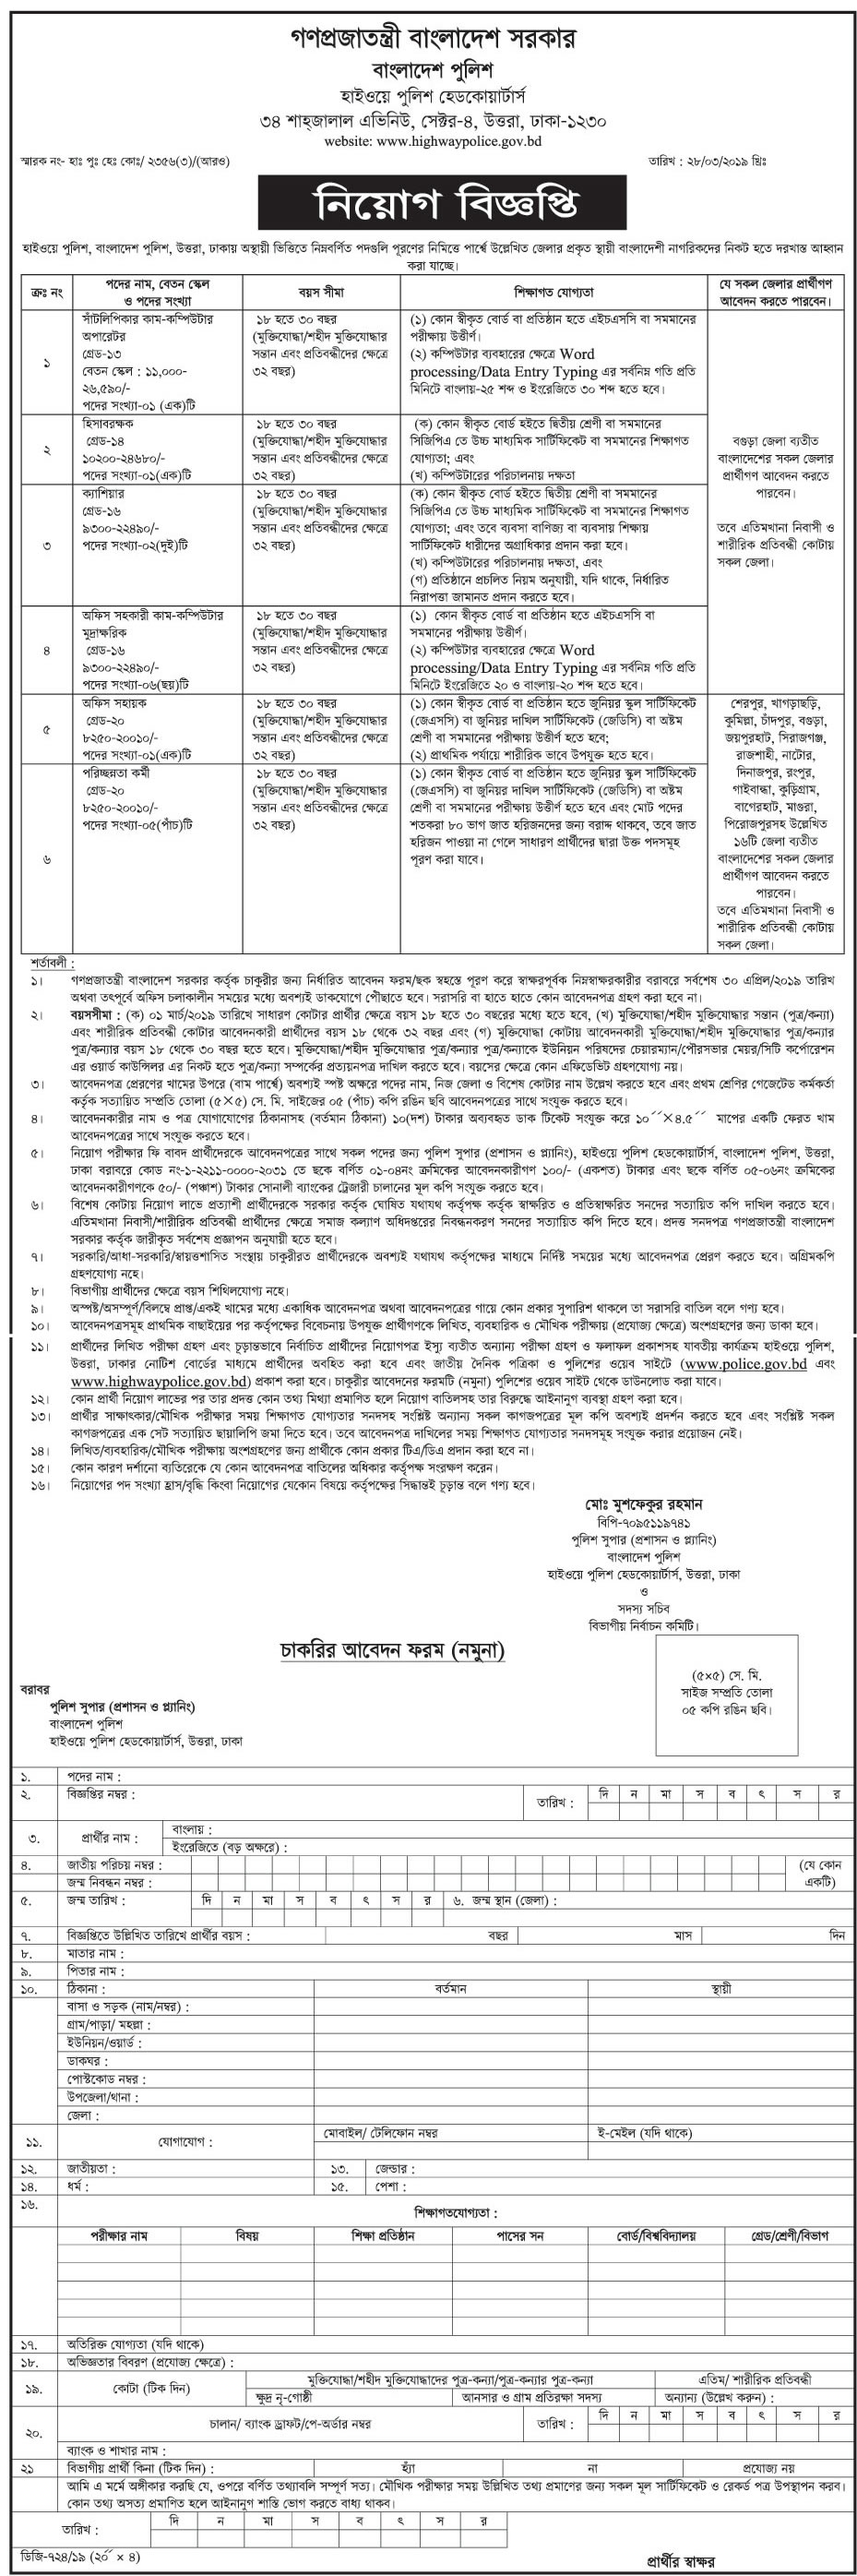 post office jobs online application form